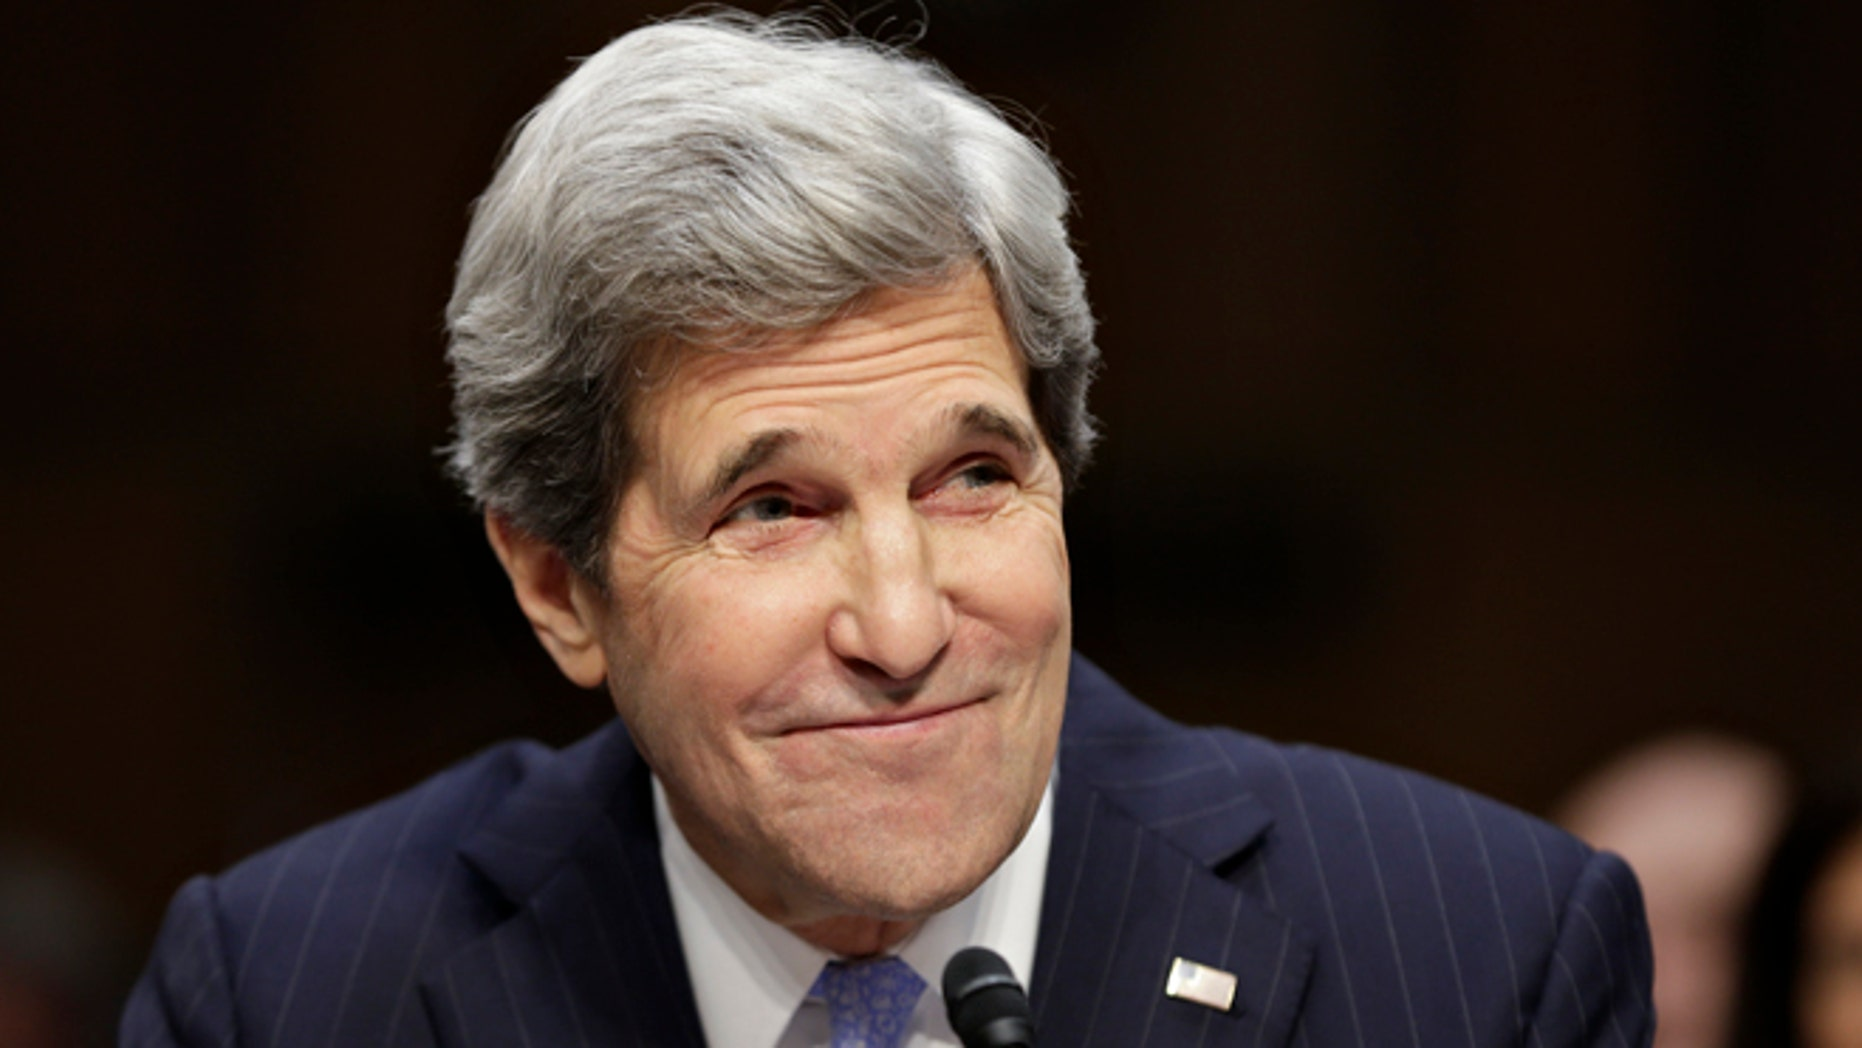 FILE: Jan. 24, 2013: Then-Sen. John Kerry, D-Mass., sits before a Senate committee during his confirmation hearing to be secretary of State.